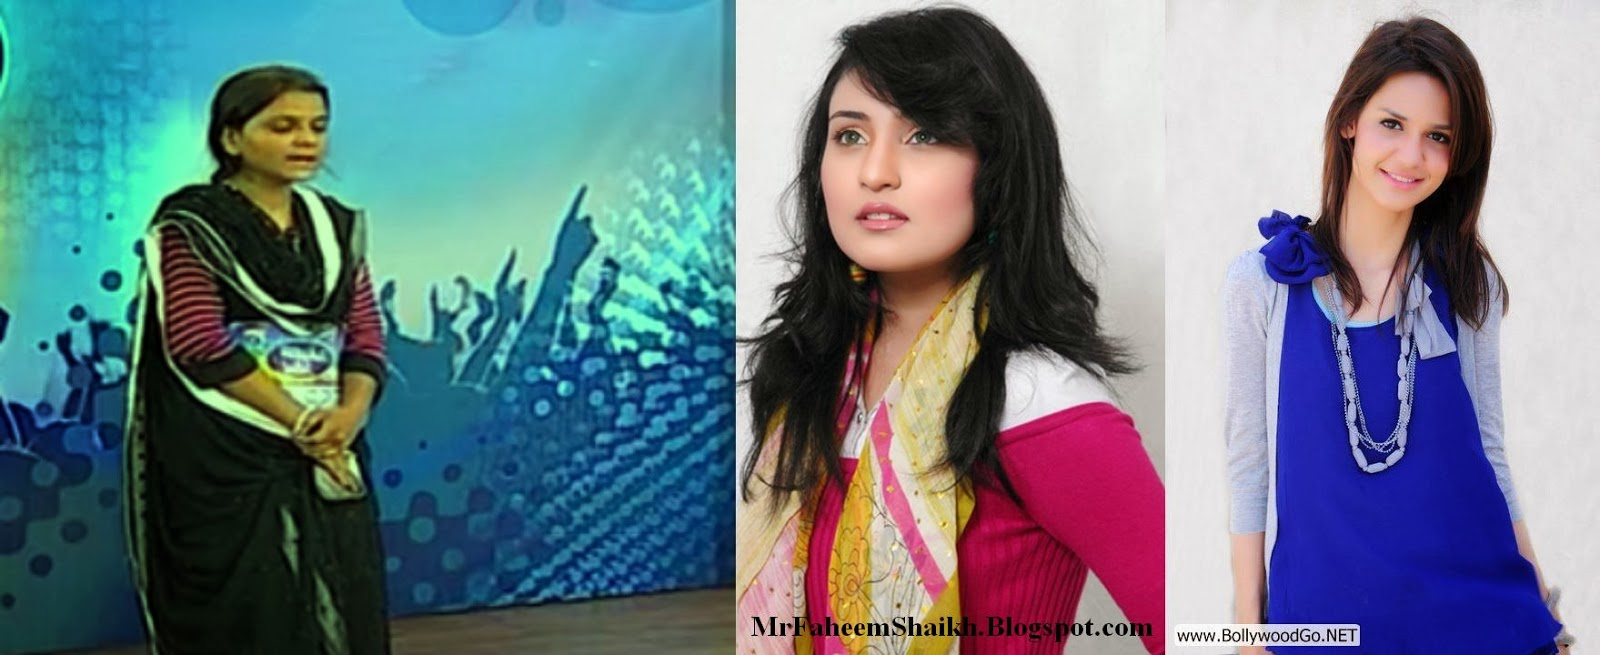 Faheem Shaikh The Artist Maria Meer Sara Raza Khan Sweet Voice Of Pakistan